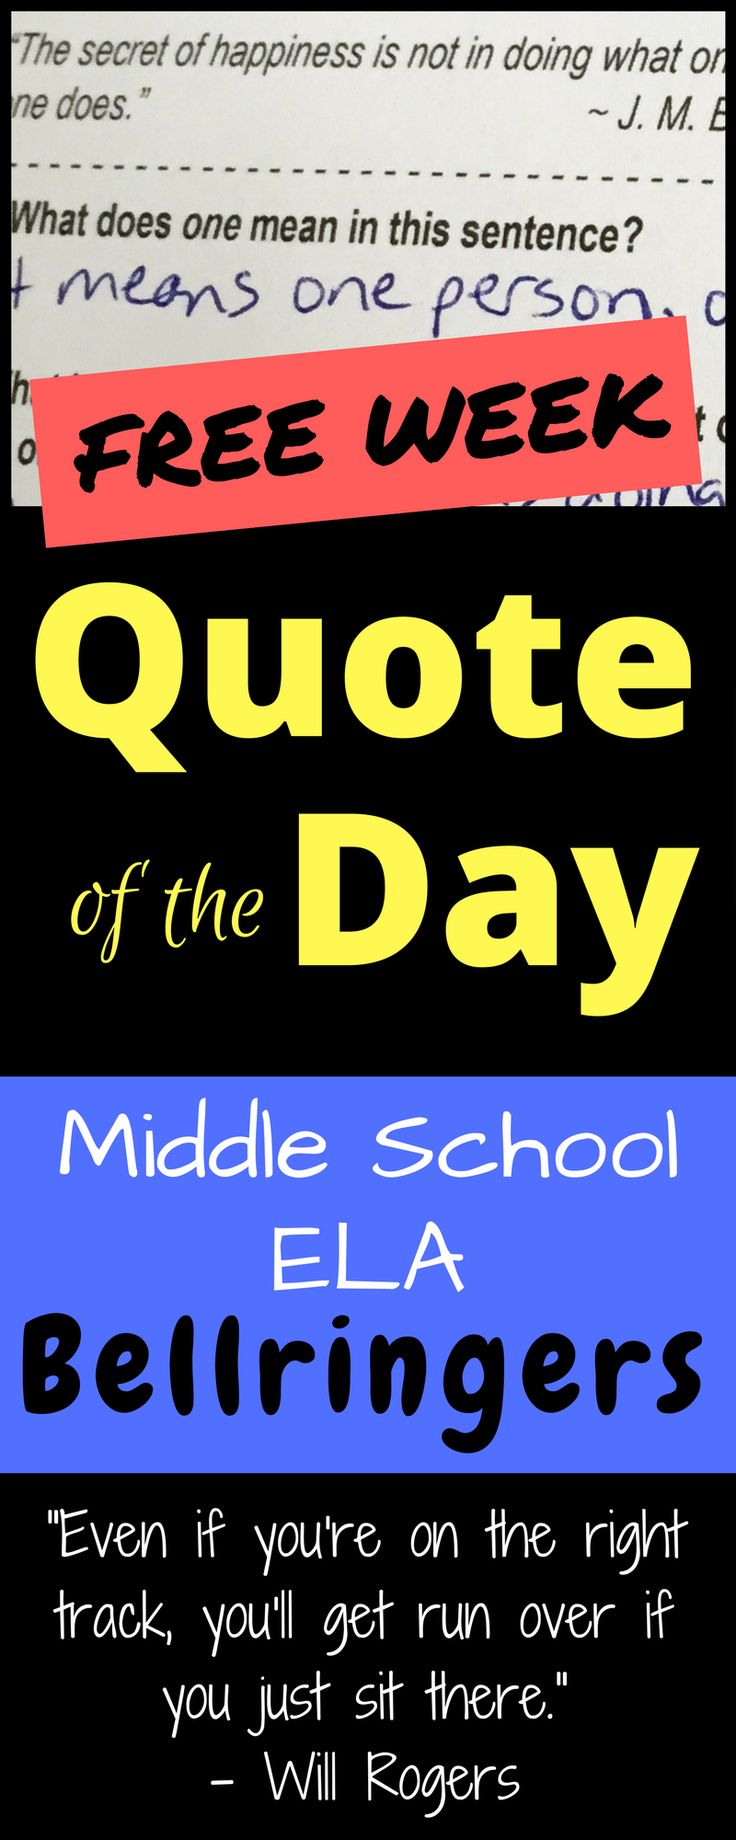 """FREE sample week of """"Quote of the Day"""" bellringers! You'll get five inspirational quotations along with analysis questions covering inference, context clues, figurative language, and more vital reading skills."""